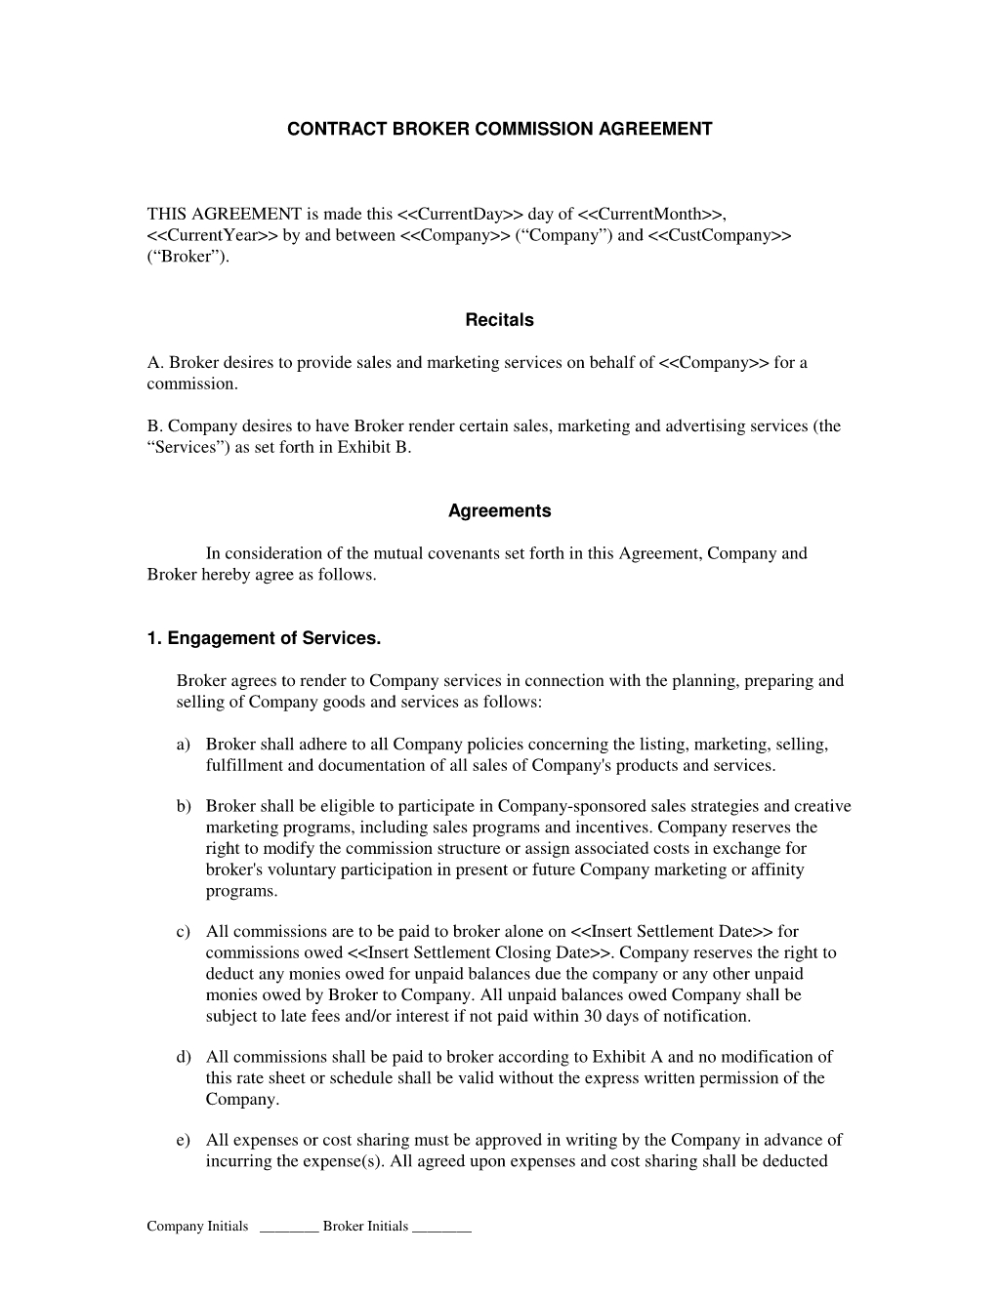 Broker Commission Sales Agreement Advertising And Marketing